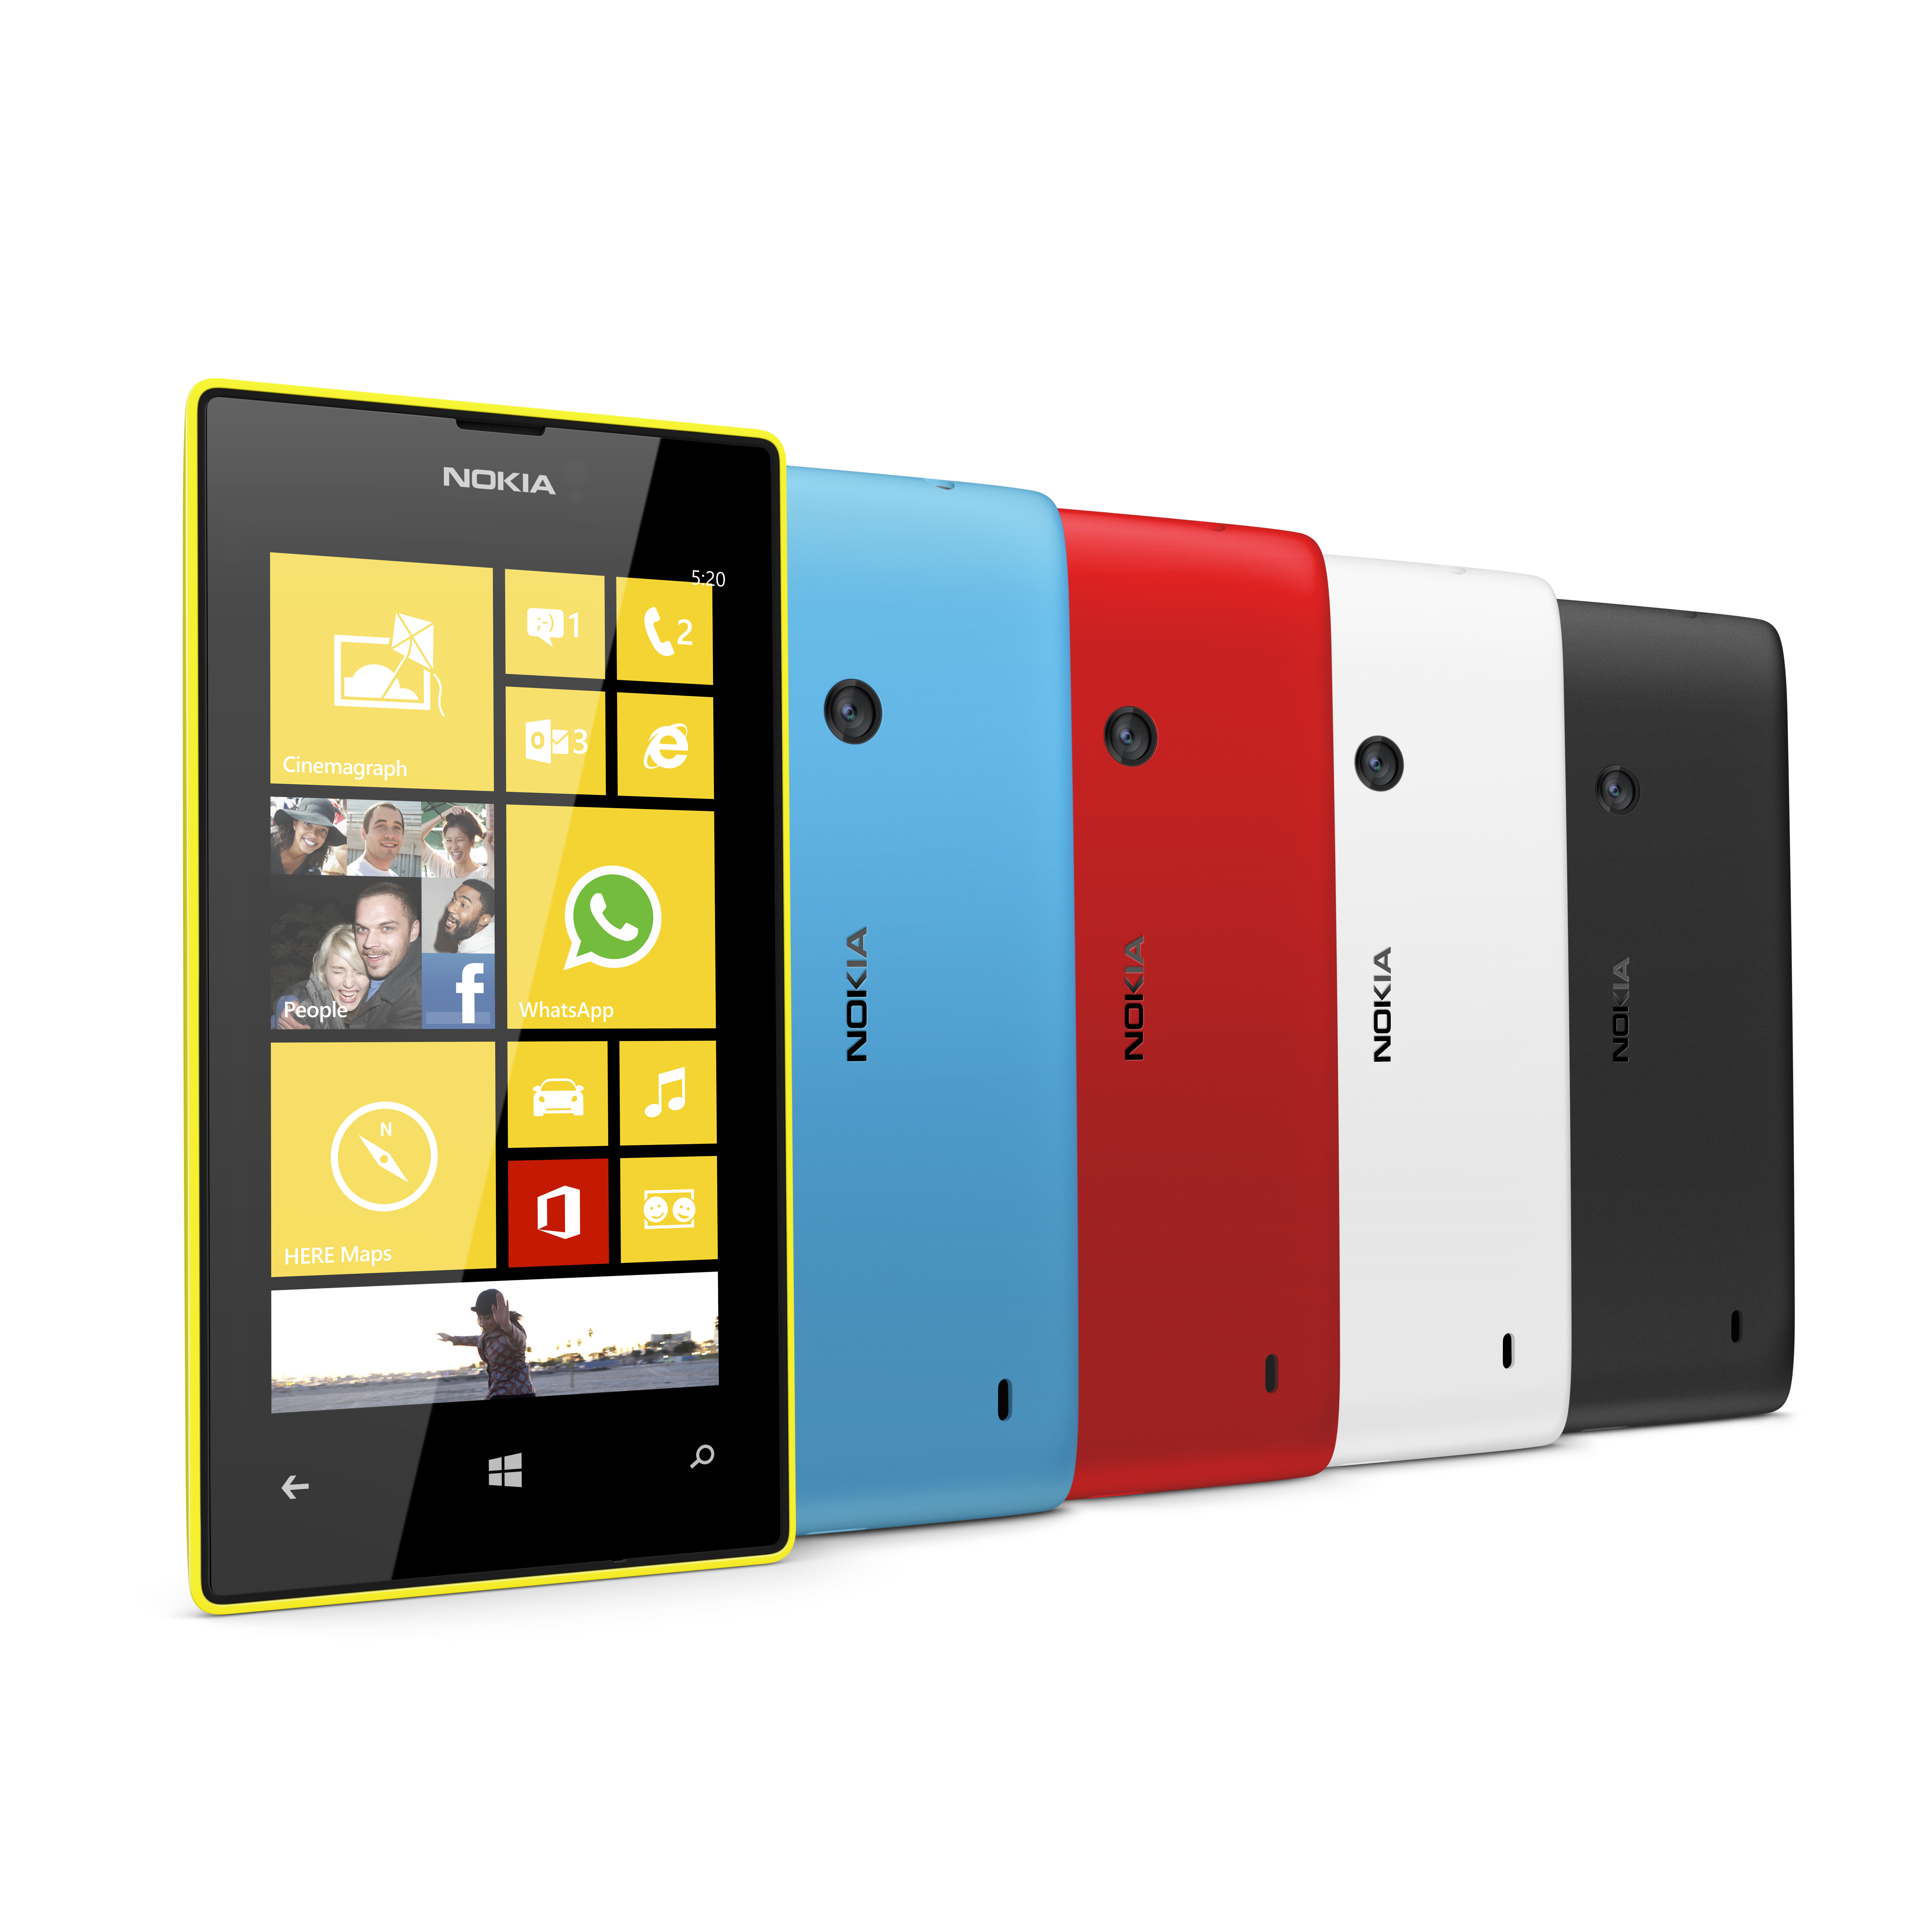 nokia nokia adds to the windows phone family with lumia 720 520. Black Bedroom Furniture Sets. Home Design Ideas